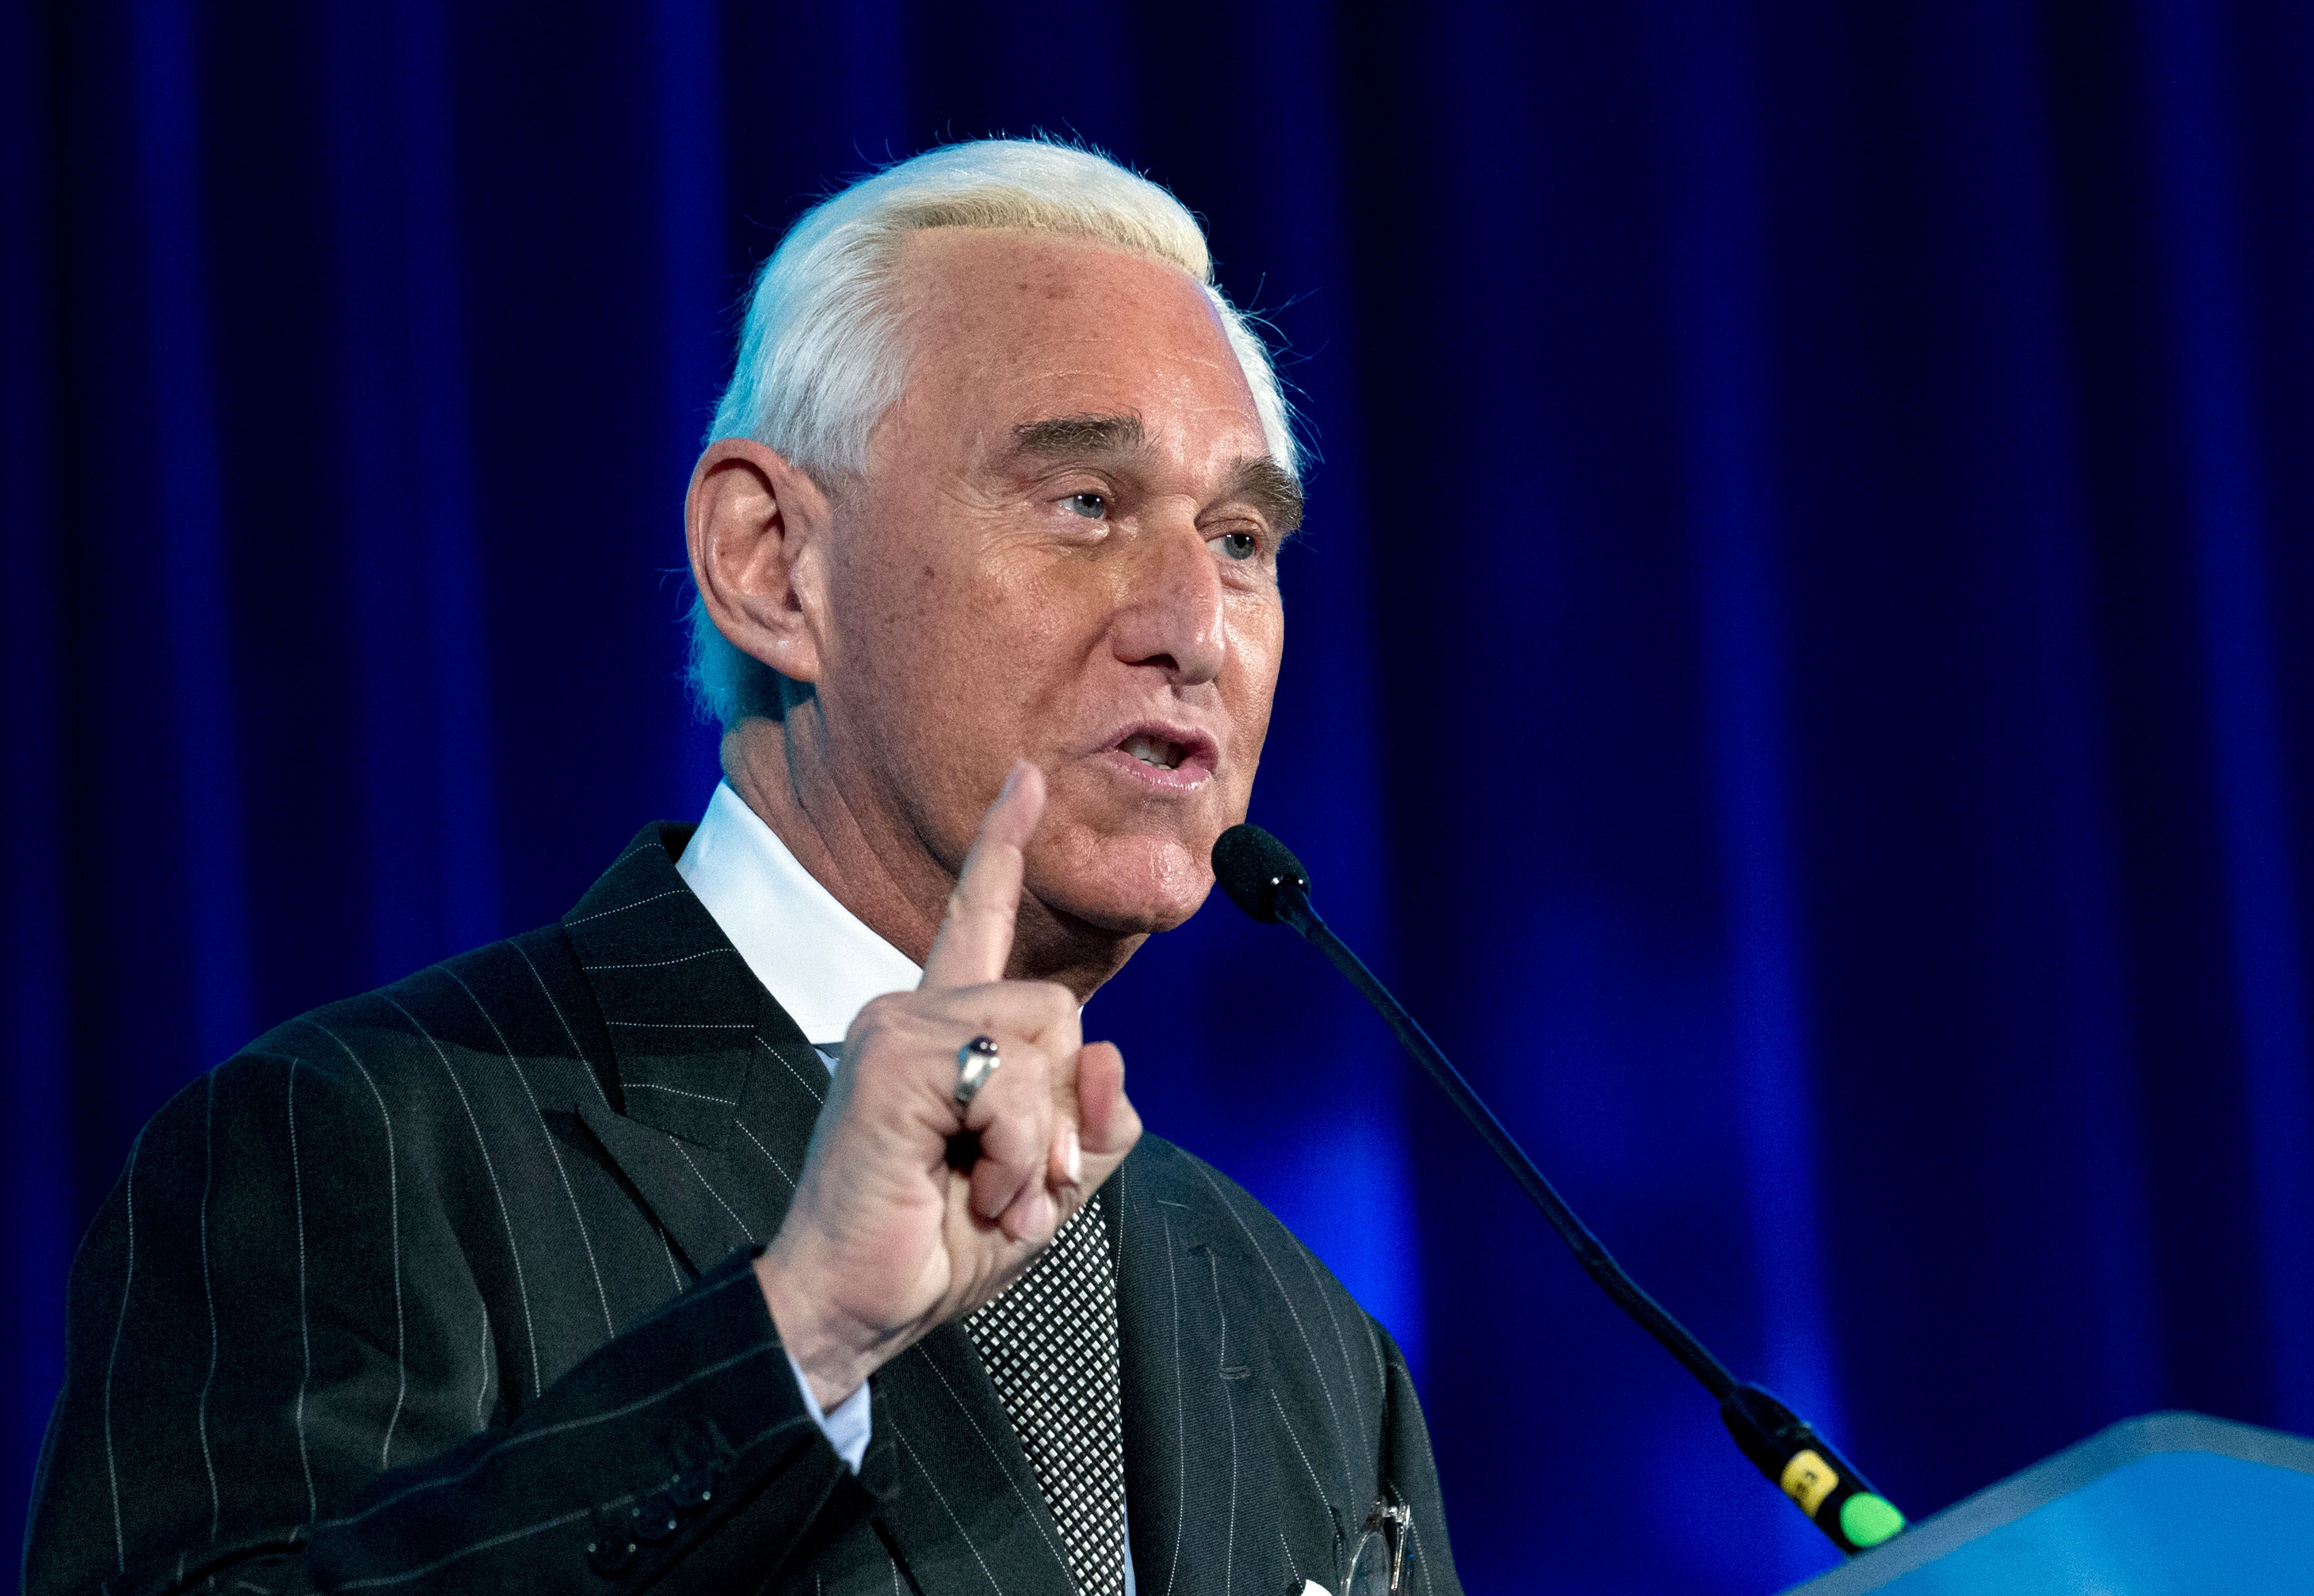 Roger Stone Admits To Lying On Infowars, Must Publicly